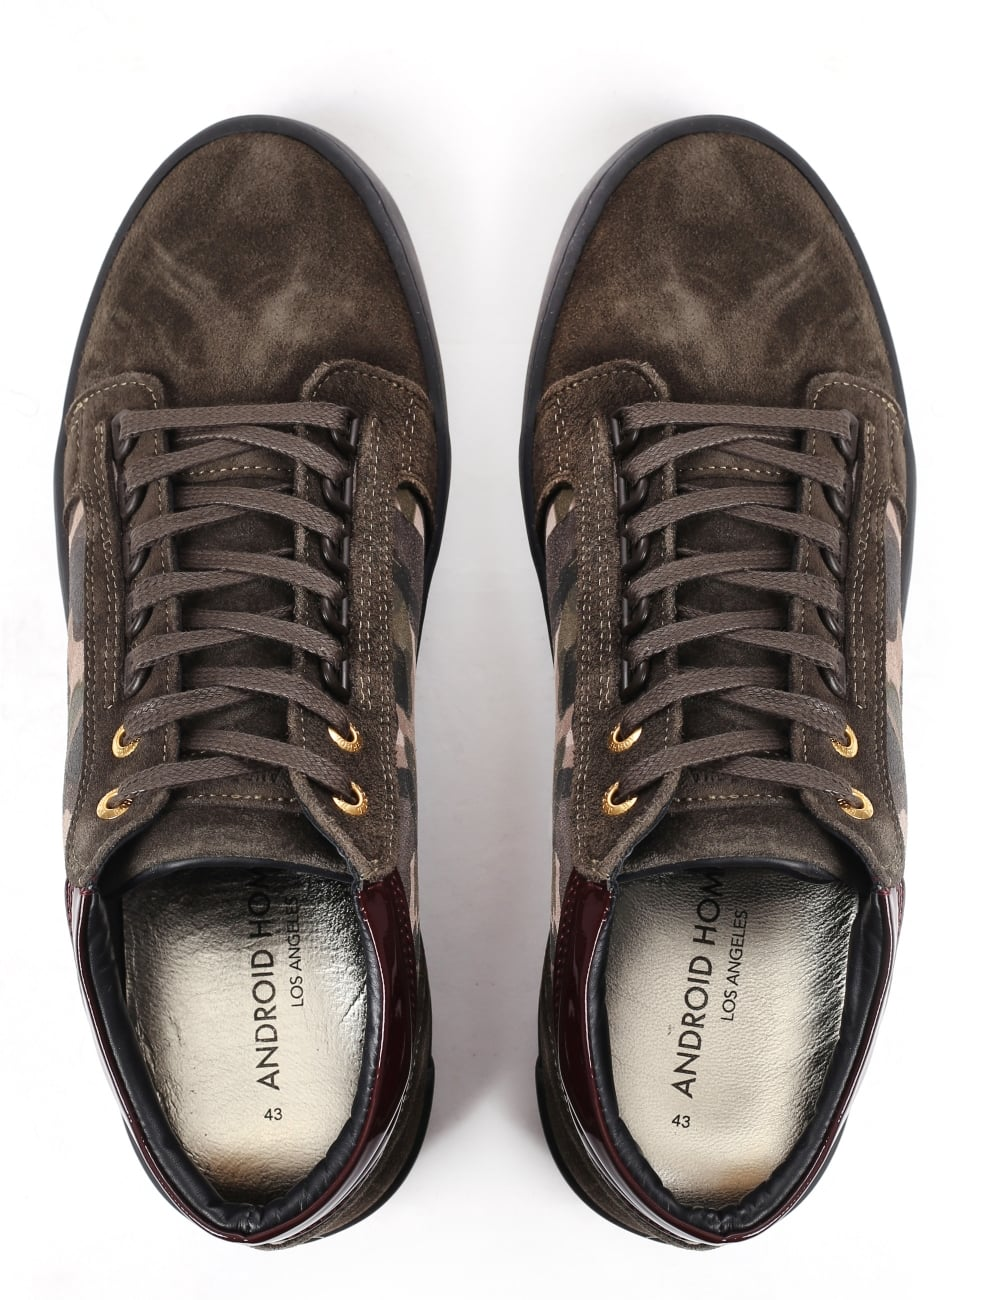 2f885c8f8978 Android Homme Propulsion Mid Men s Camouflage Trainer